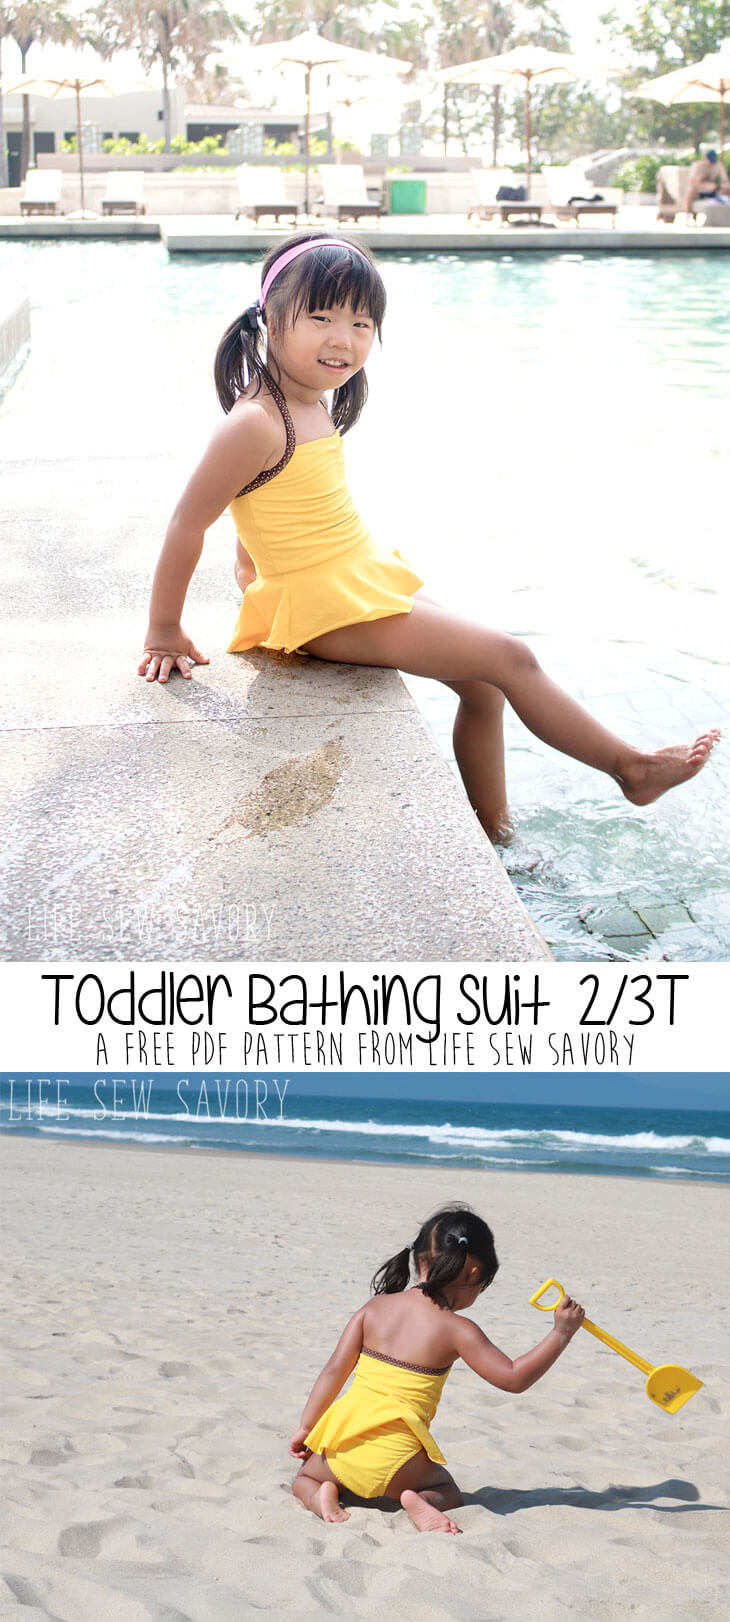 toddler bathing suit pattern from life sew savory